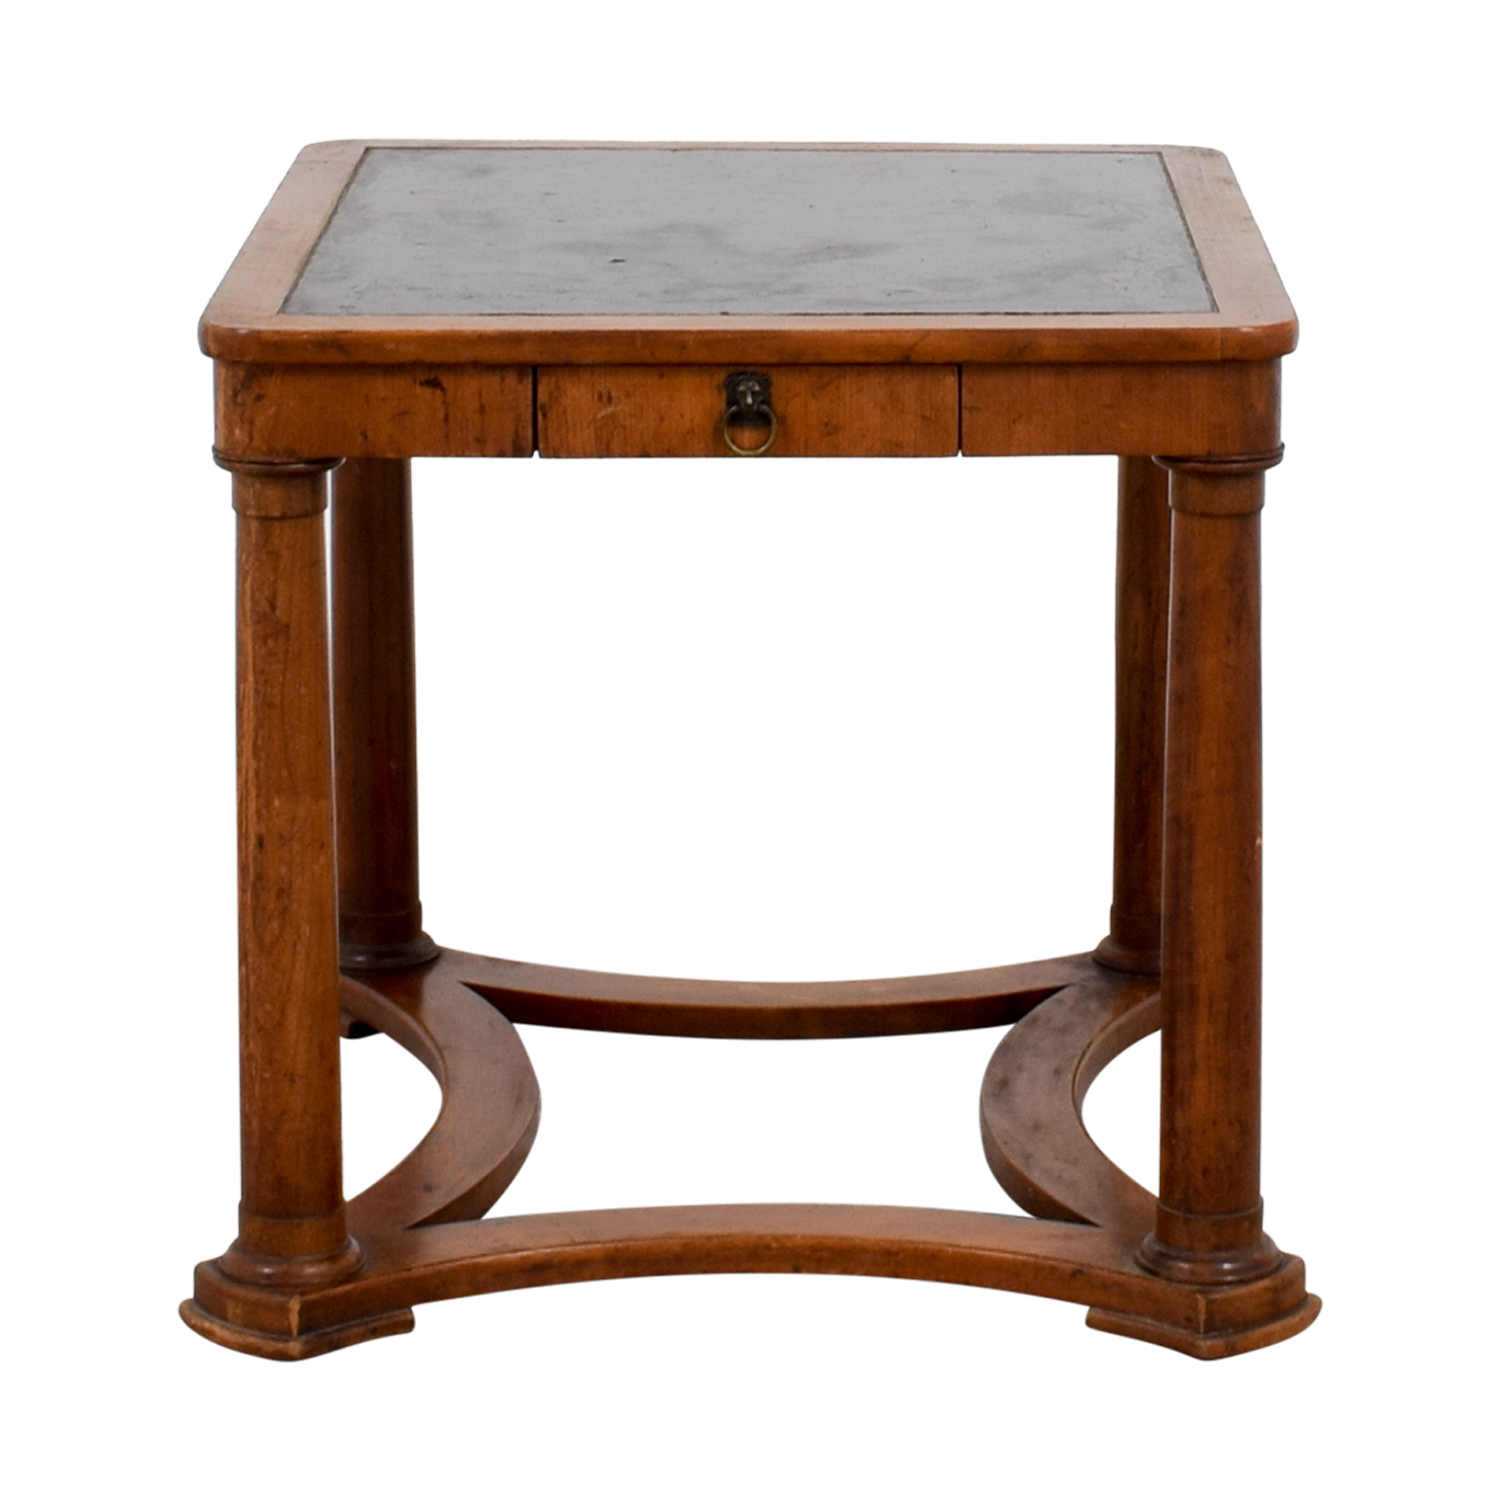 Furniture Masters Furniture Masters Baker Black Top End Table price